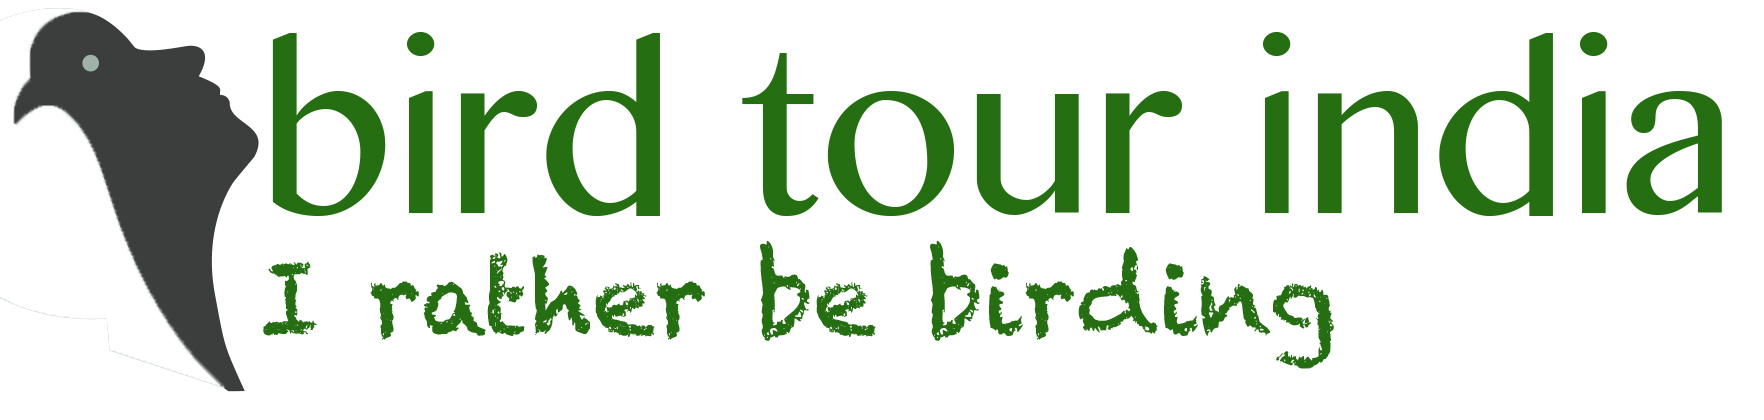 birdwatching tours holidays in india